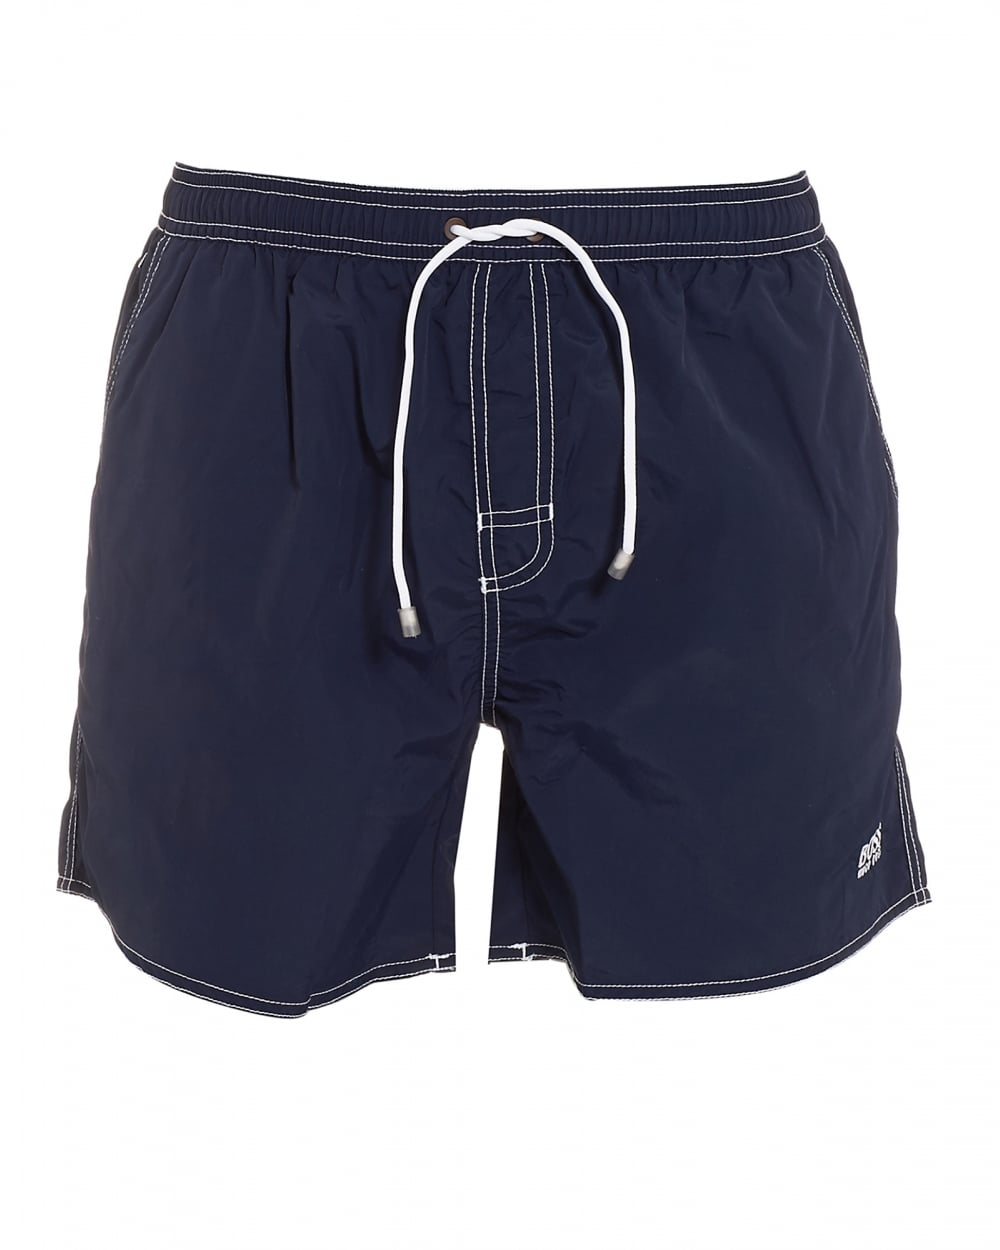 2e23ed676 Hugo Boss Body Mens Lobster Short Navy Blue Swim Shorts